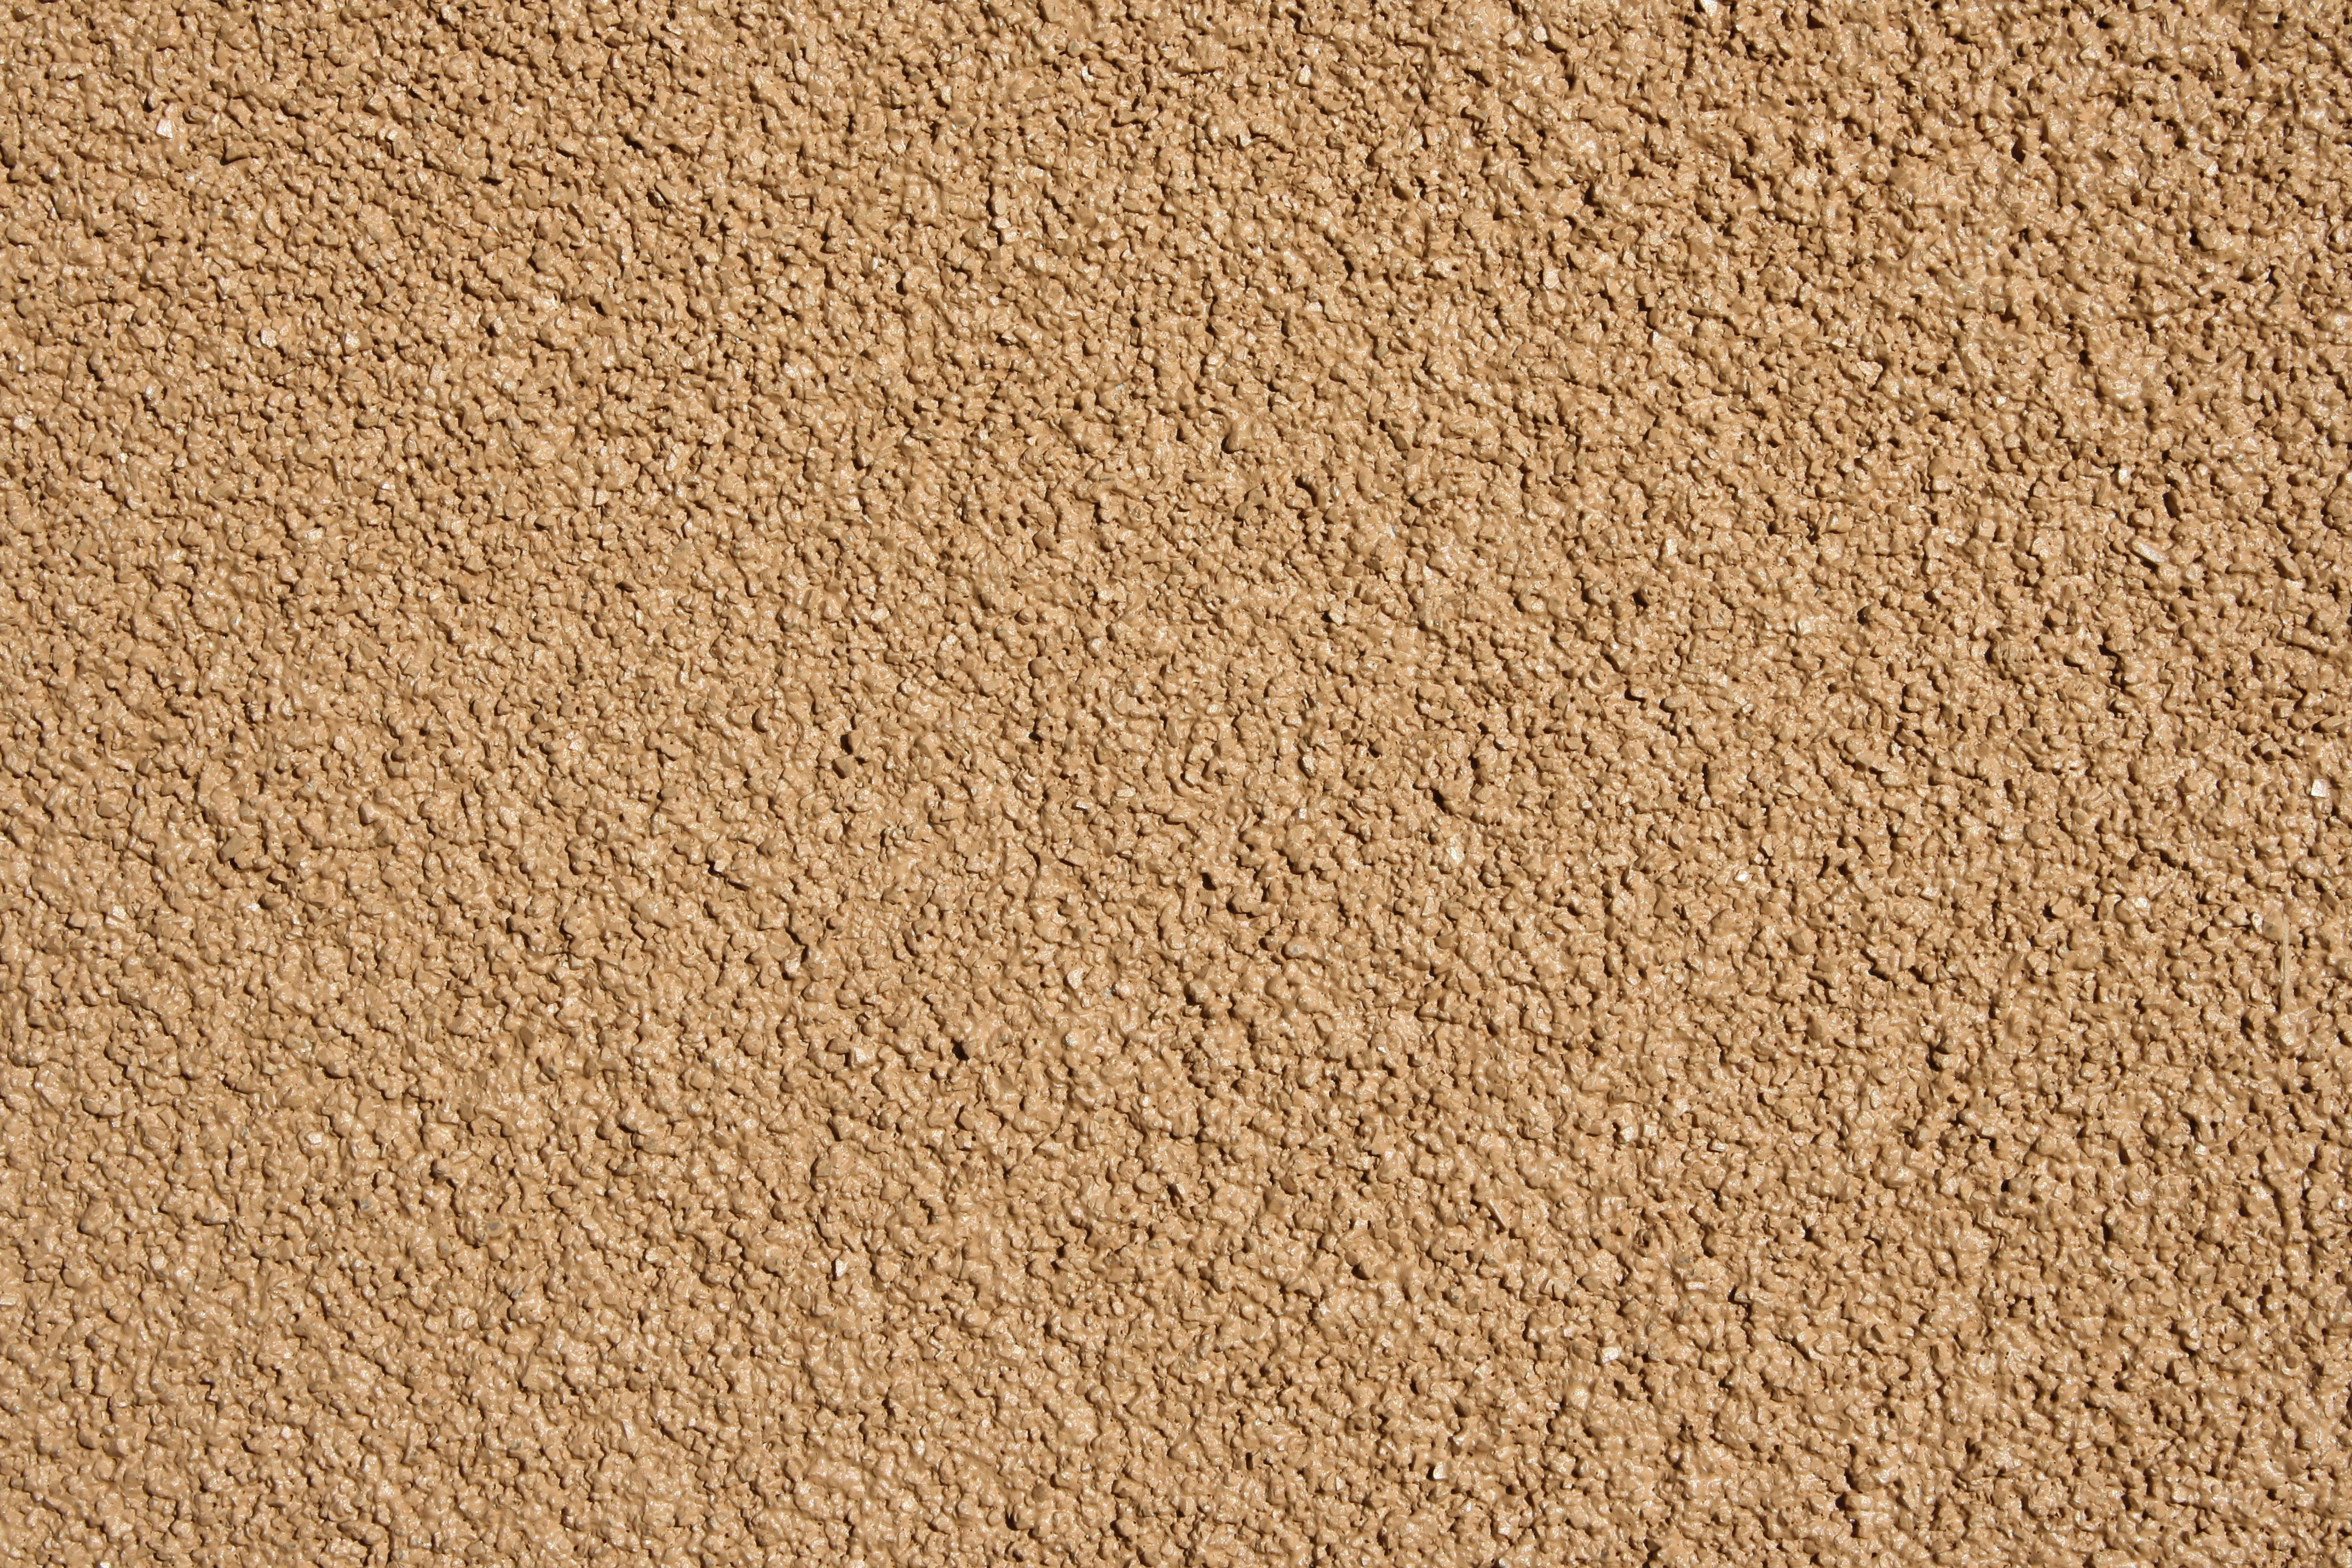 Tan Stucco Close Up Texture